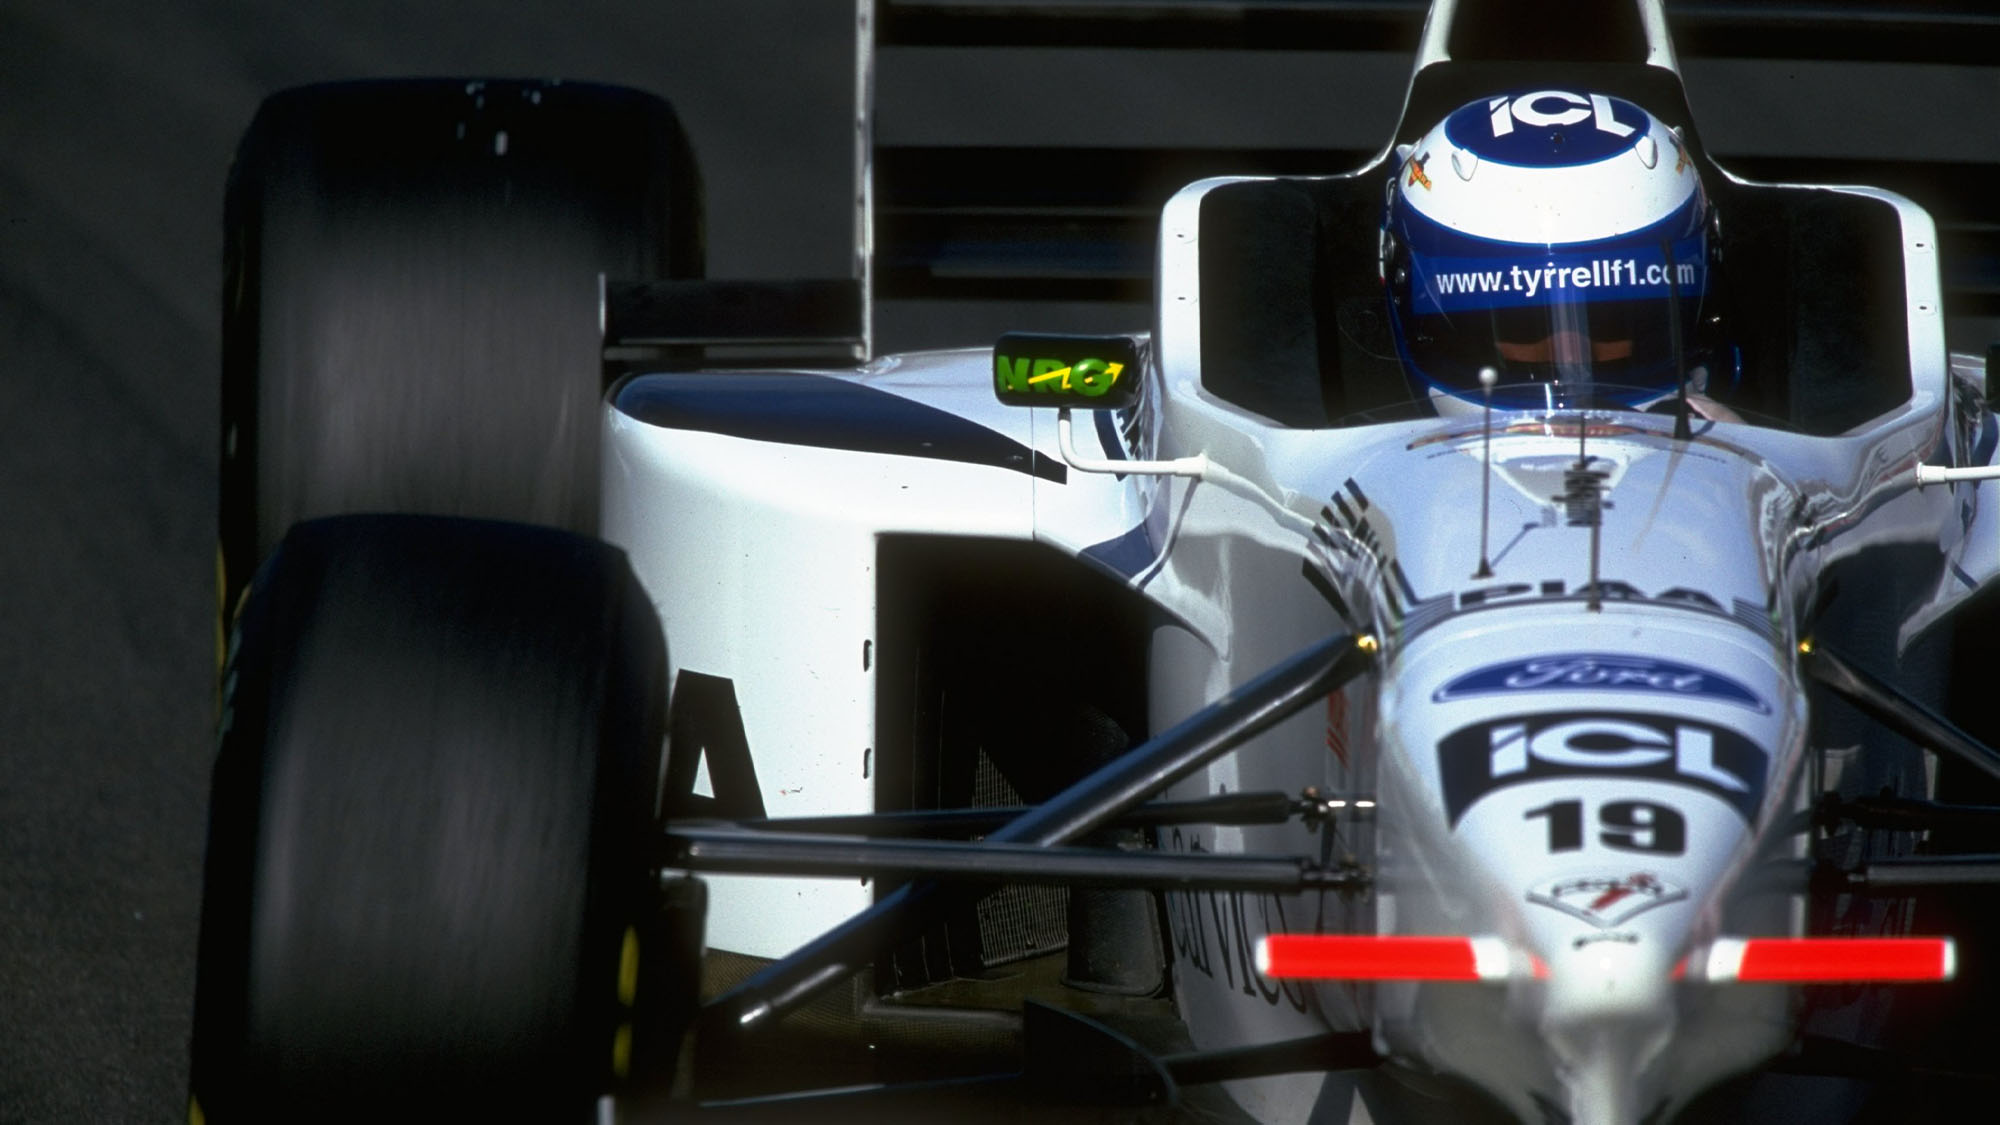 29 Jun 1997: Mika Salo of Finland driving his Tyrrell-Ford during the French Grand Prix at Magny-Cours in Nevers, France. \ Mandatory Credit: Mike Cooper /Allsport